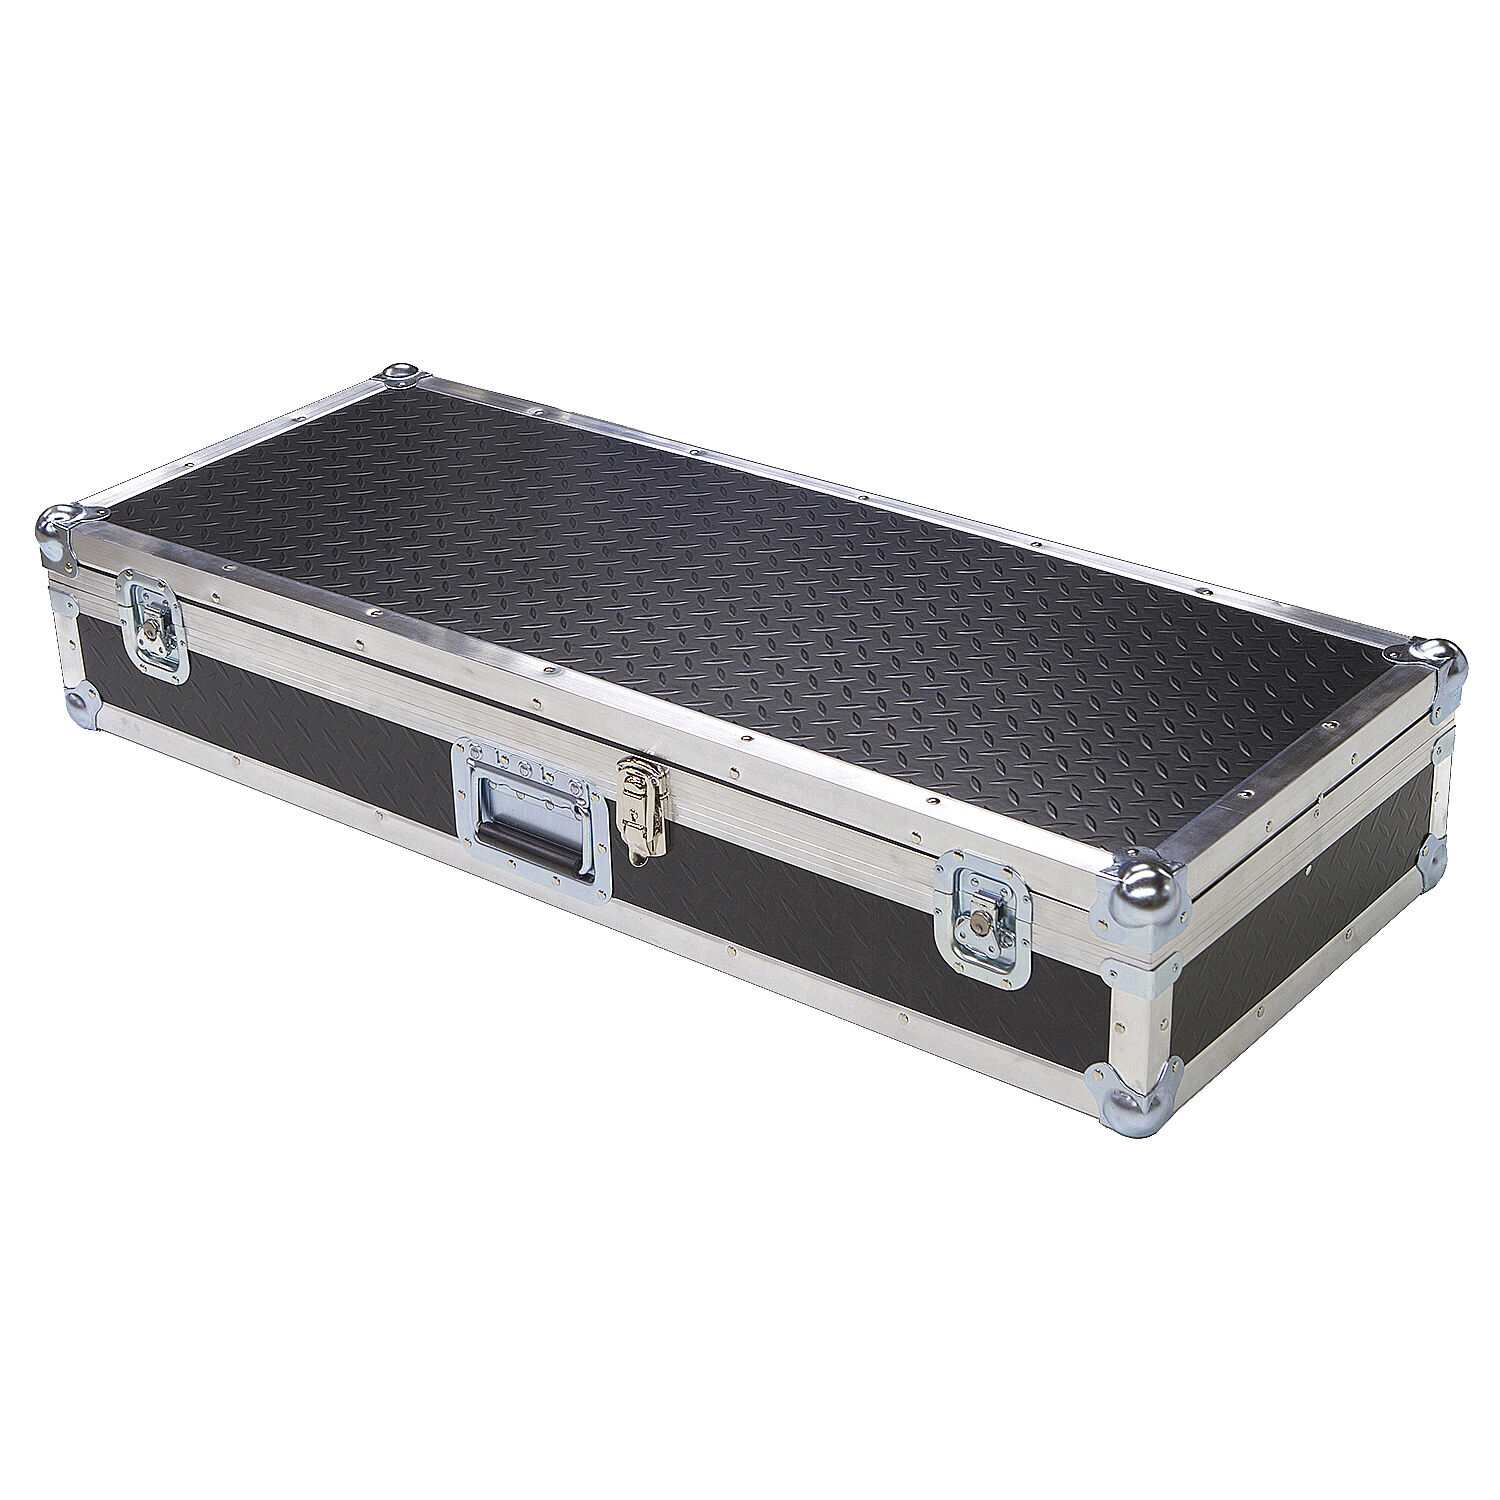 Diamond Plate Light Duty 1 4  ATA Case for KORG TRITON EXTREME 76 NOTE KEYBOARD